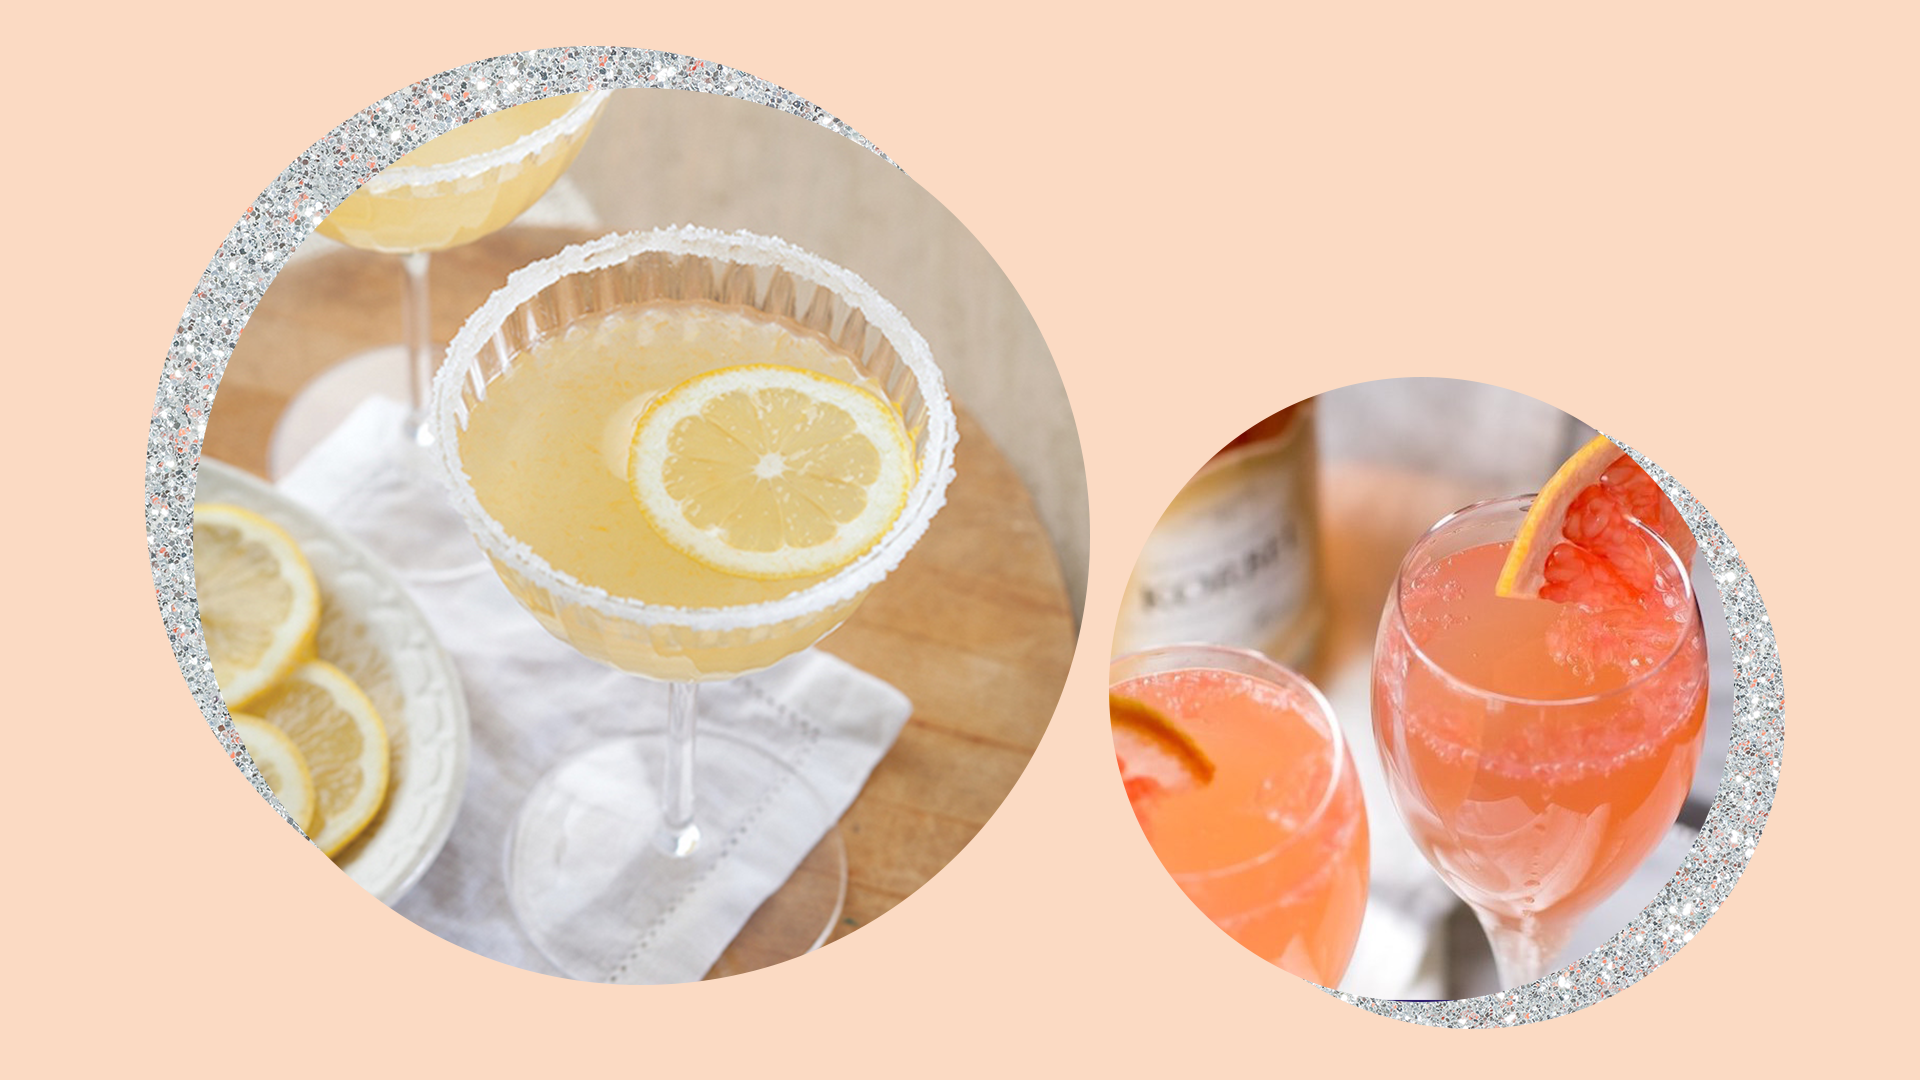 10 Easy Cocktail Recipes You Can Make At Home Stylecaster